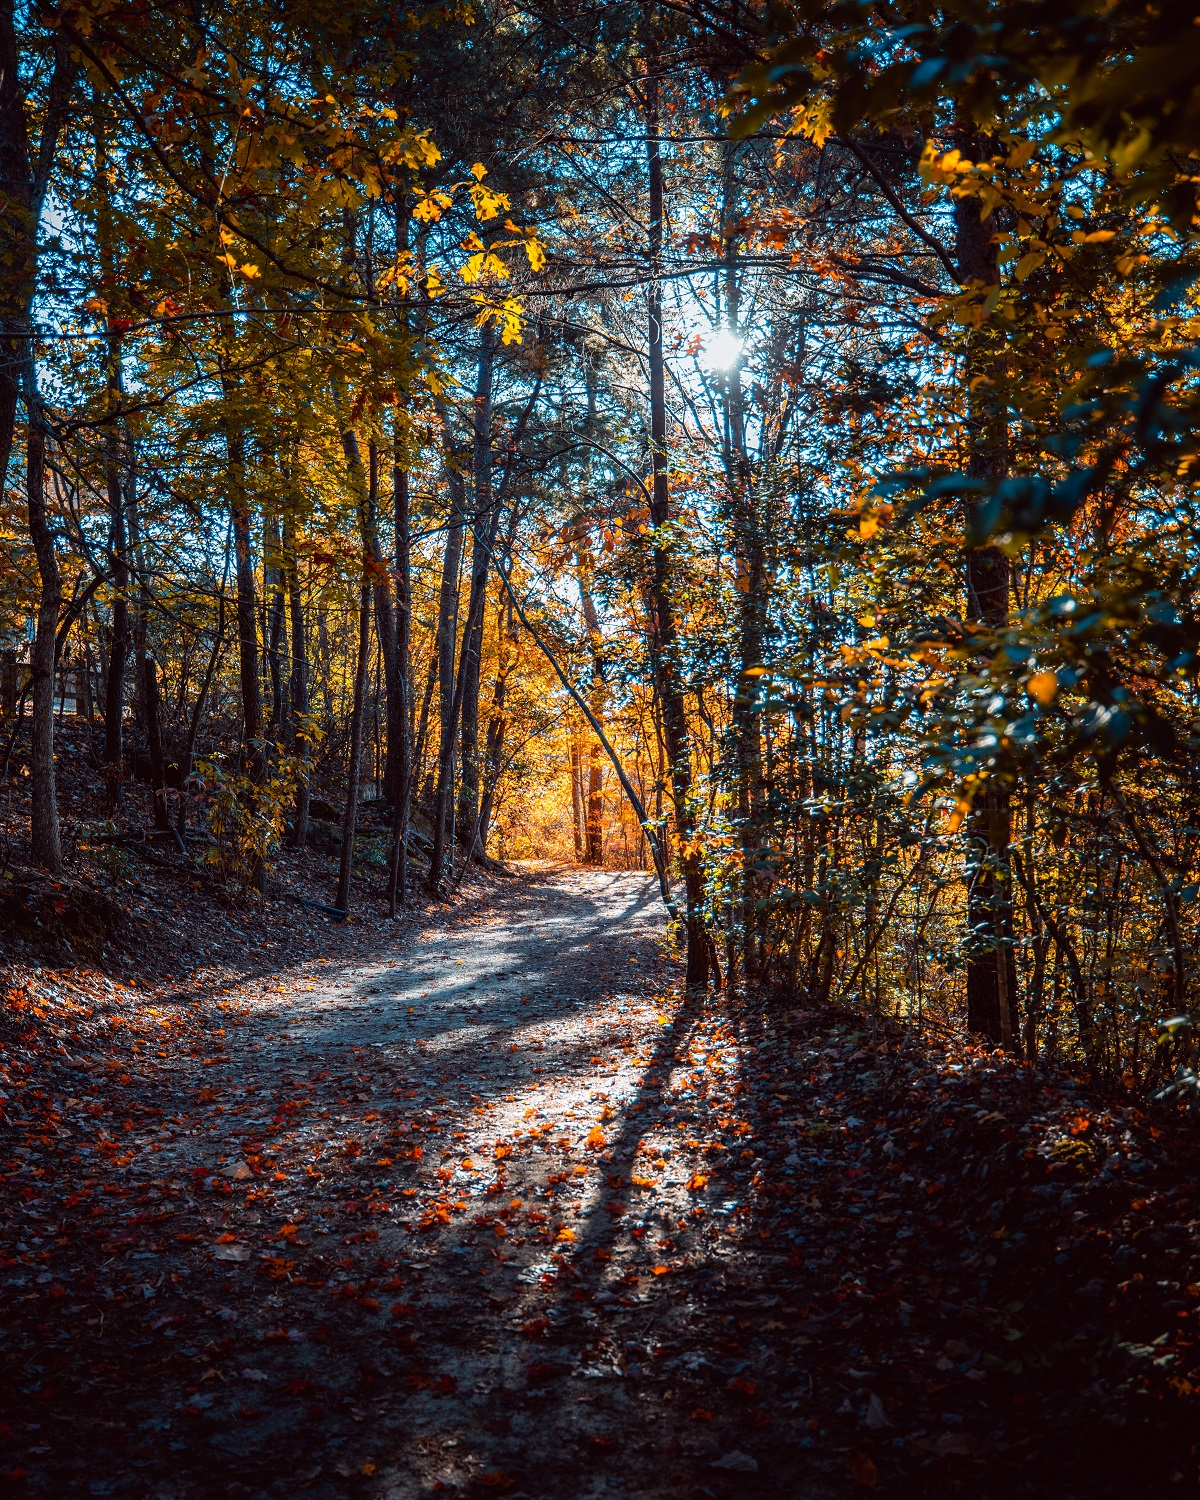 A forest trail in fall with the sun filtering through the trees